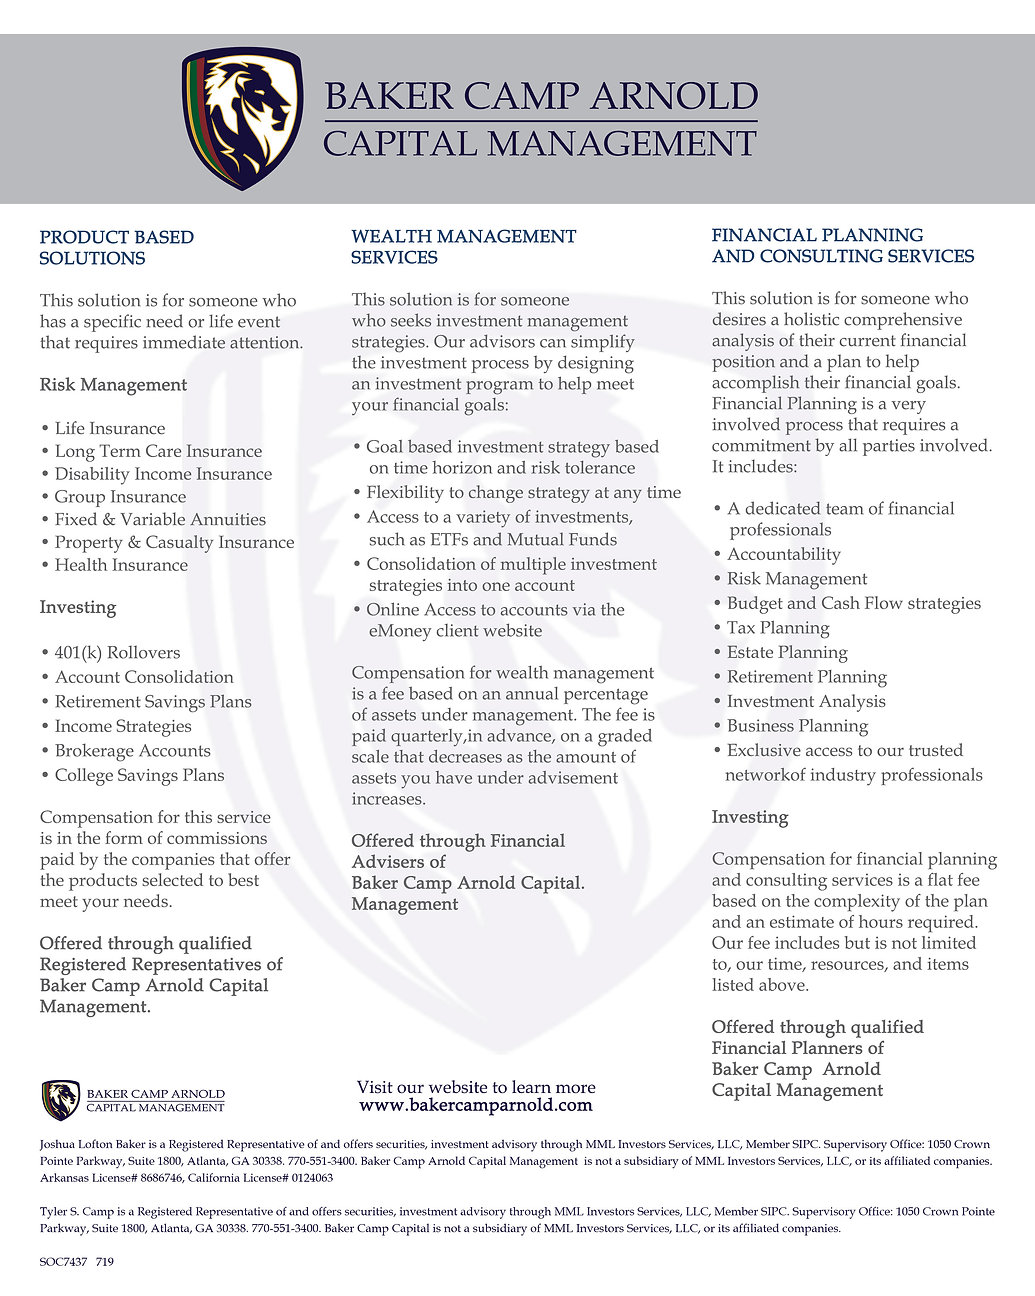 BCA Services One-Pager.jpg